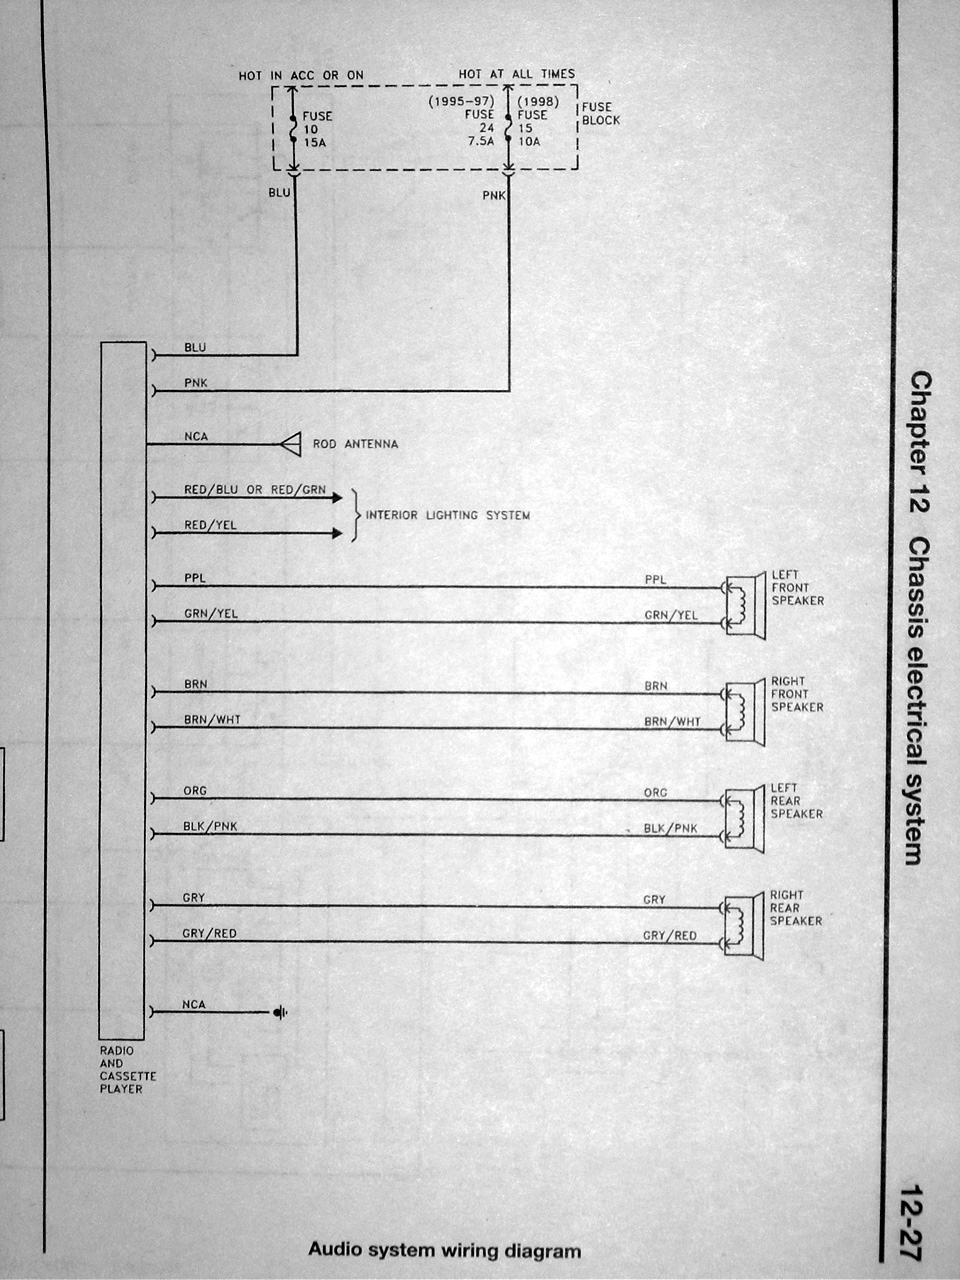 DSC01849 wiring diagram thread *useful info* nissan forum 2001 nissan sentra radio wiring diagram at gsmx.co